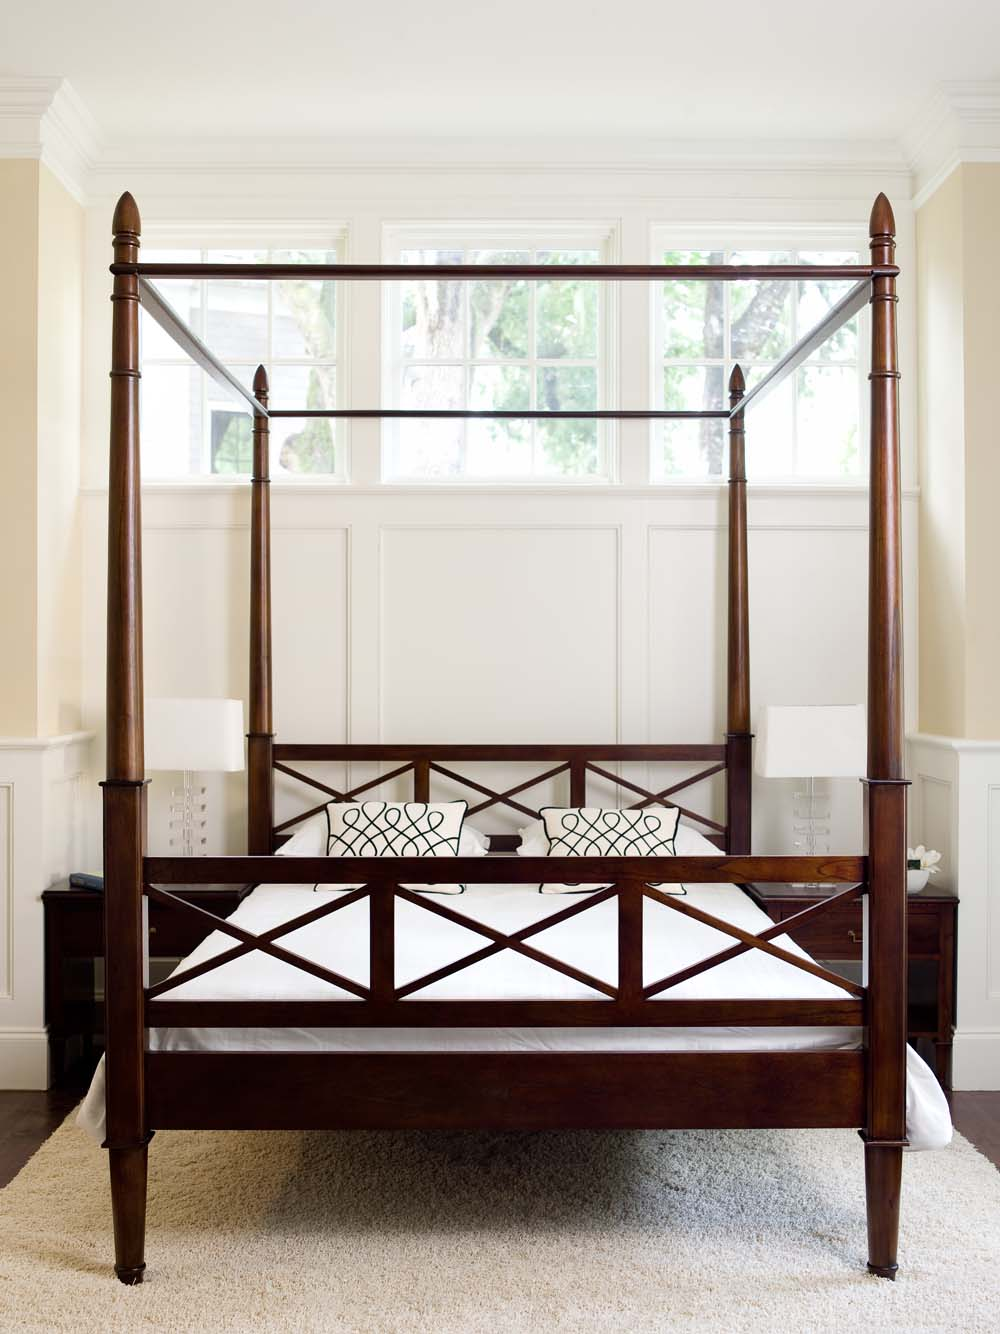 1000 images about colonial interiors on pinterest british colonial colonial and british colonial style british colonial bedroom furniture